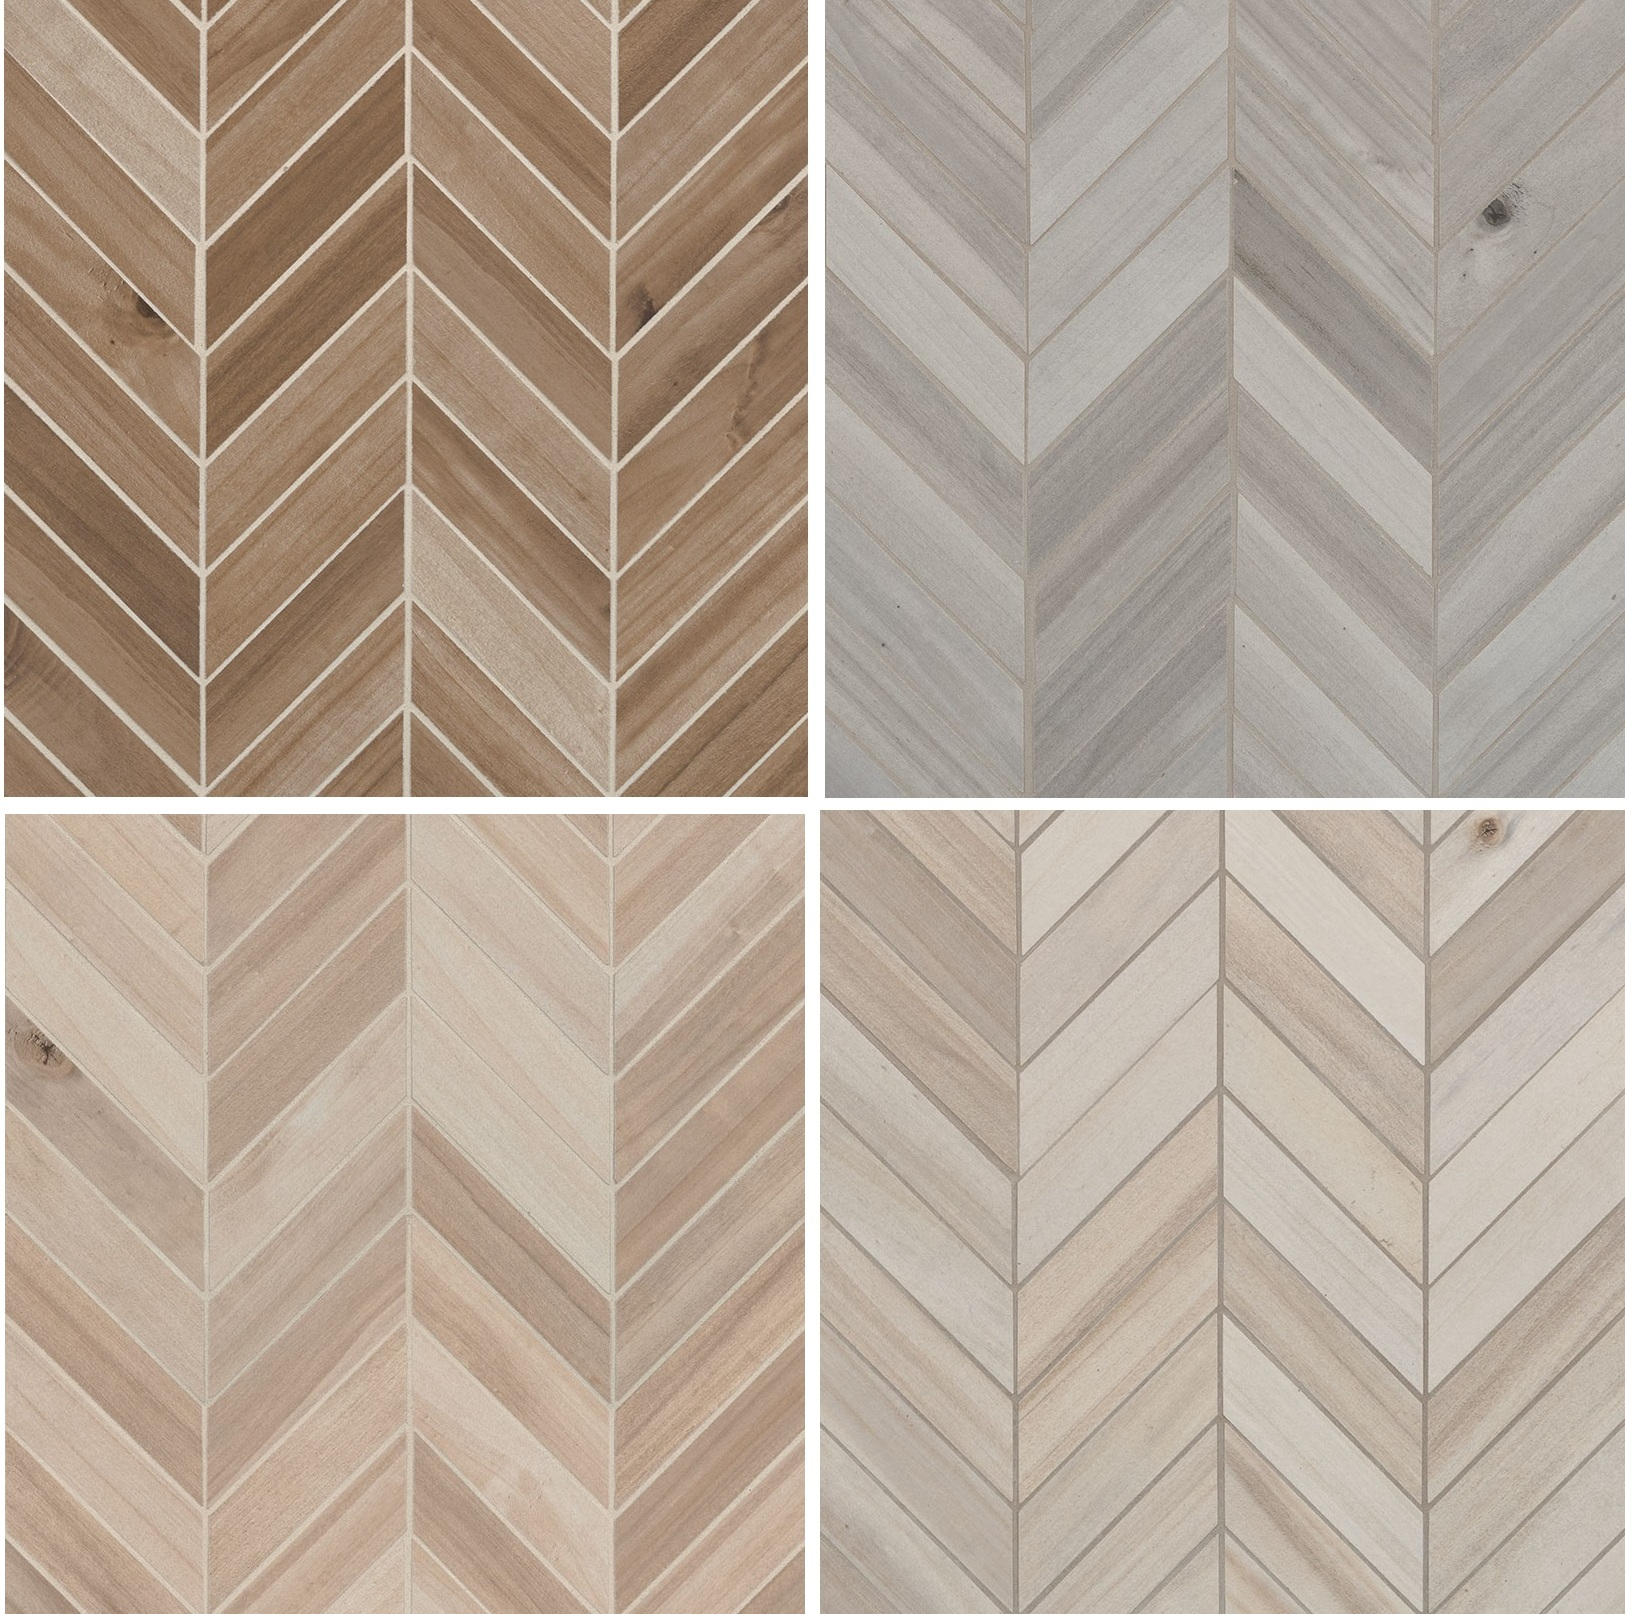 Havenwood Series 12x15 Chevron Mosaic